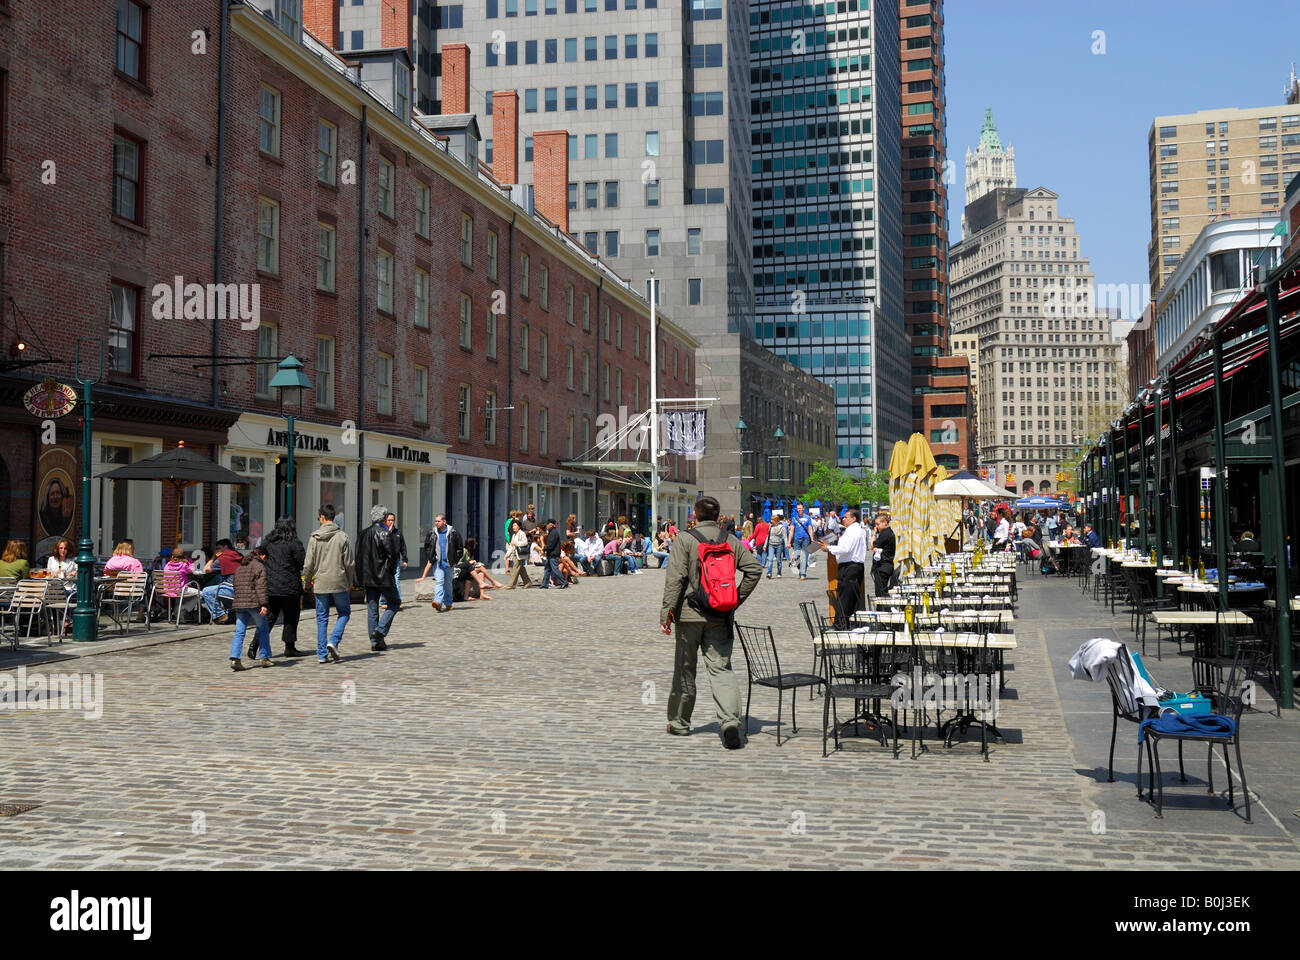 People in the South Street Seaport Historical District, New York - Stock Image